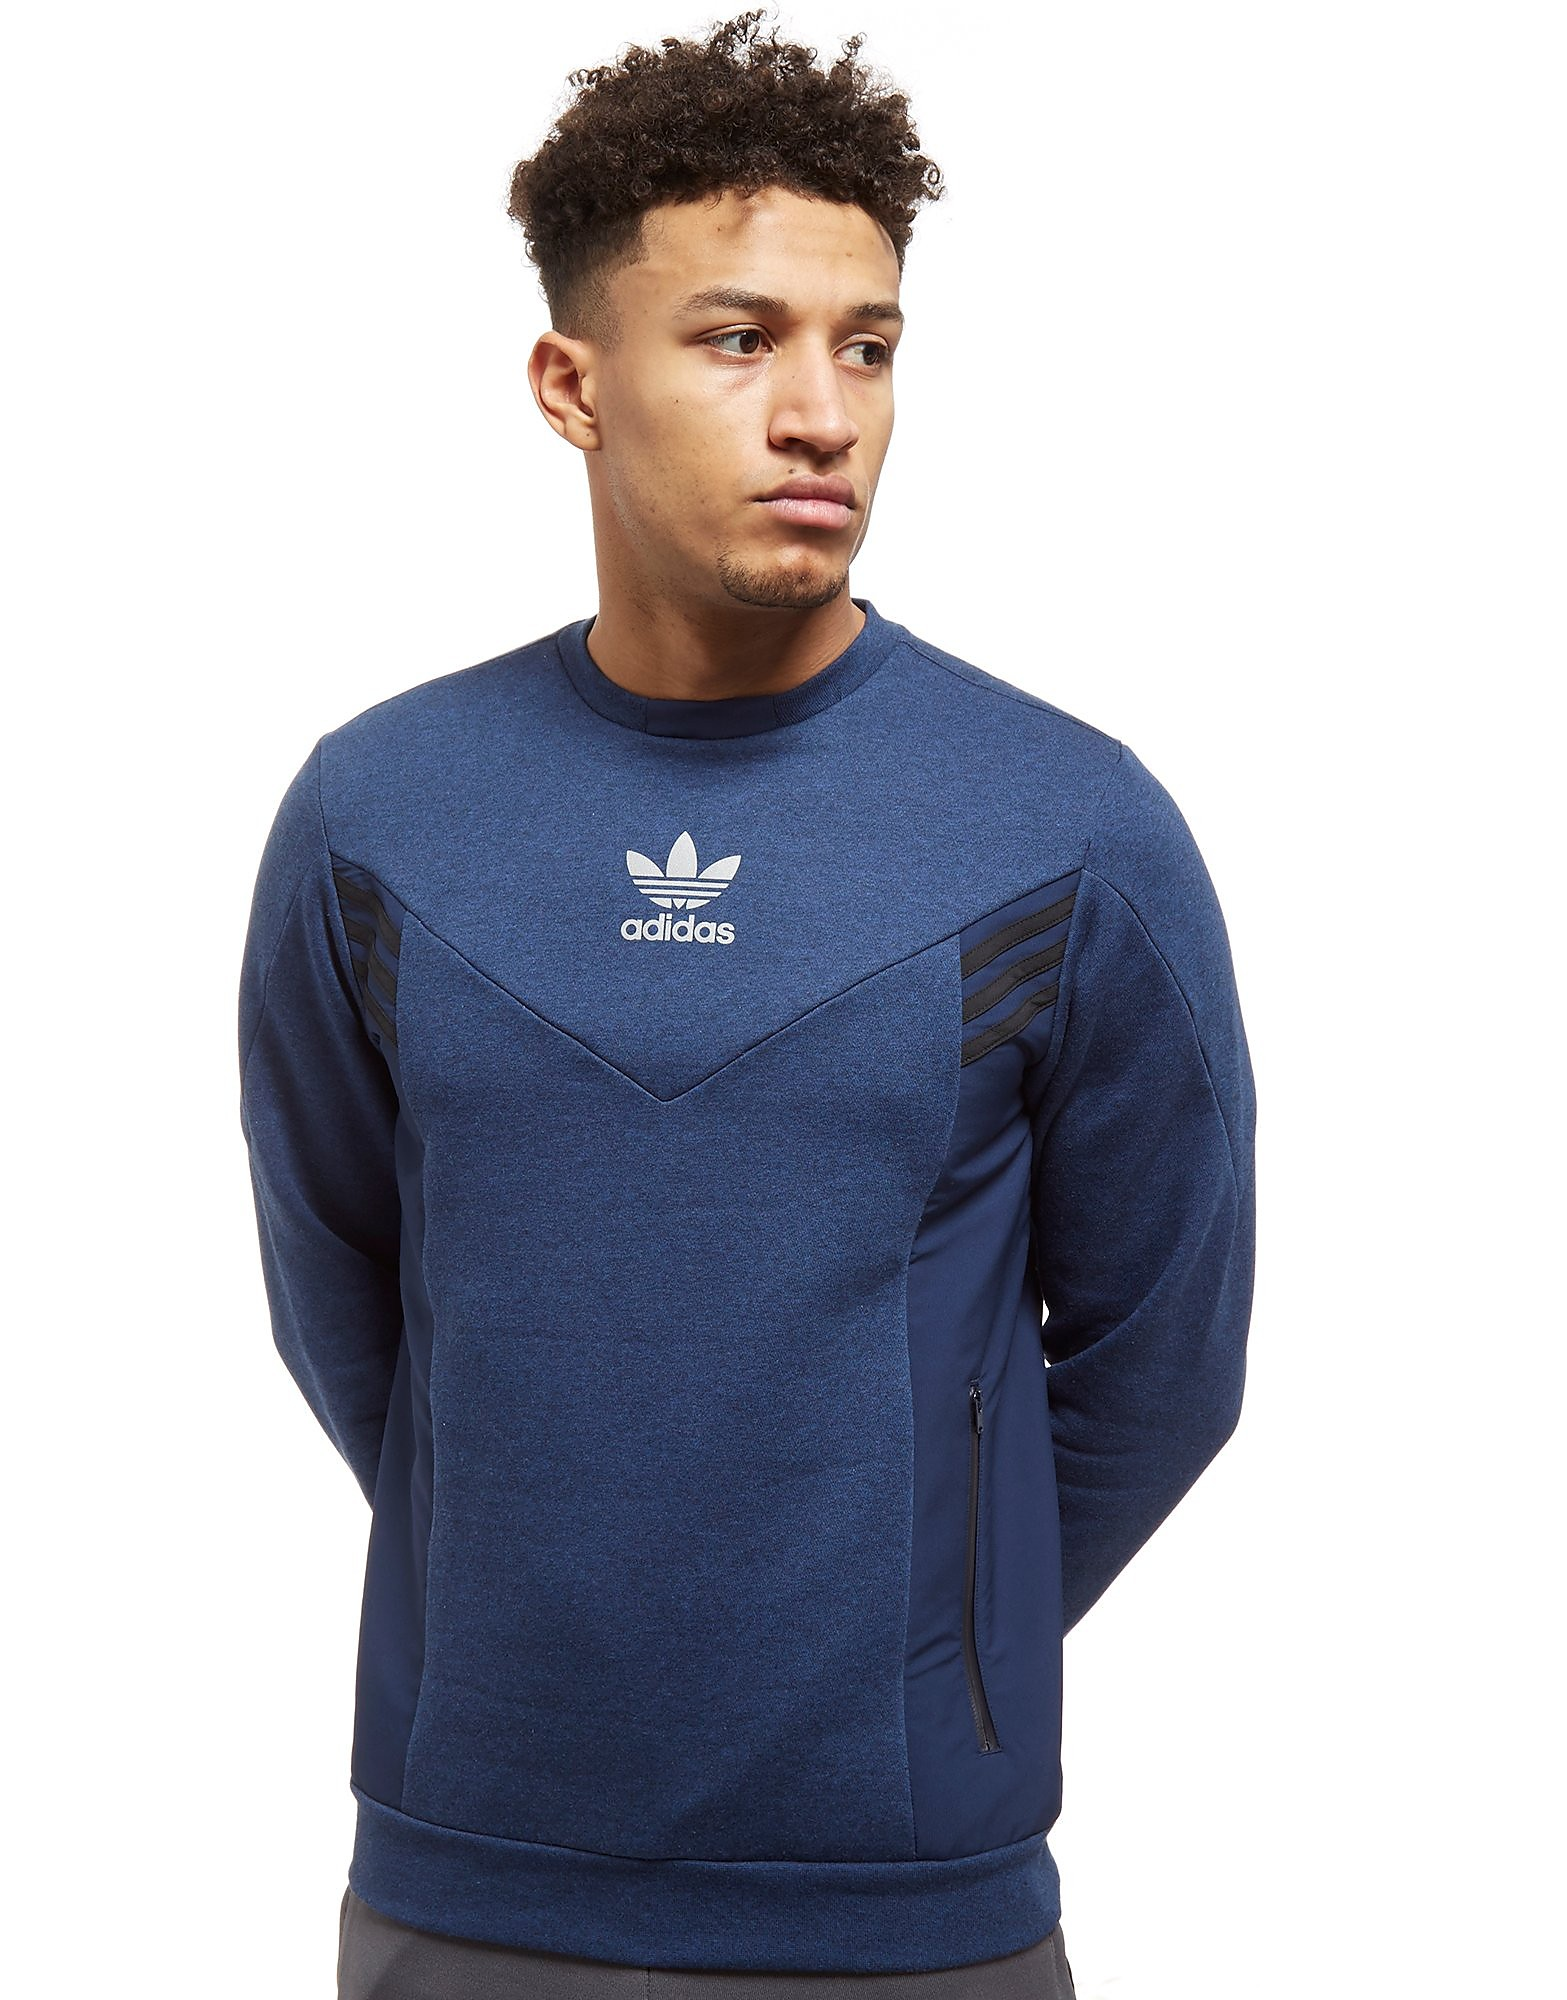 adidas Originals Street Run Crew Sweatshirt Heren